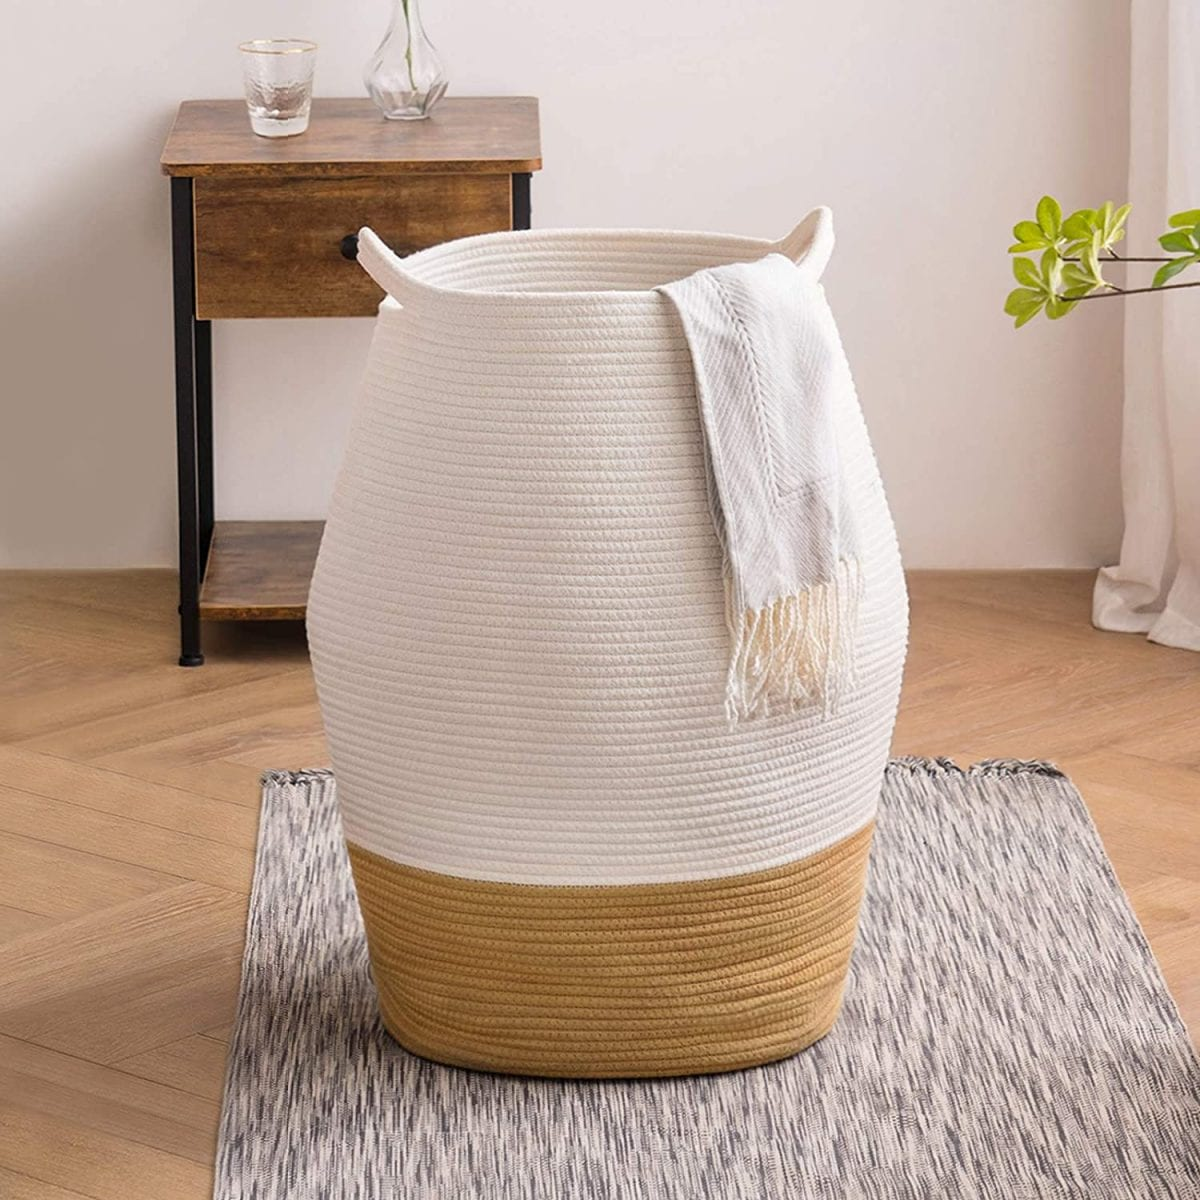 Two toned large woven basket - perfect for laundry, or storage and just $30 from Amazon! #amazonfinds